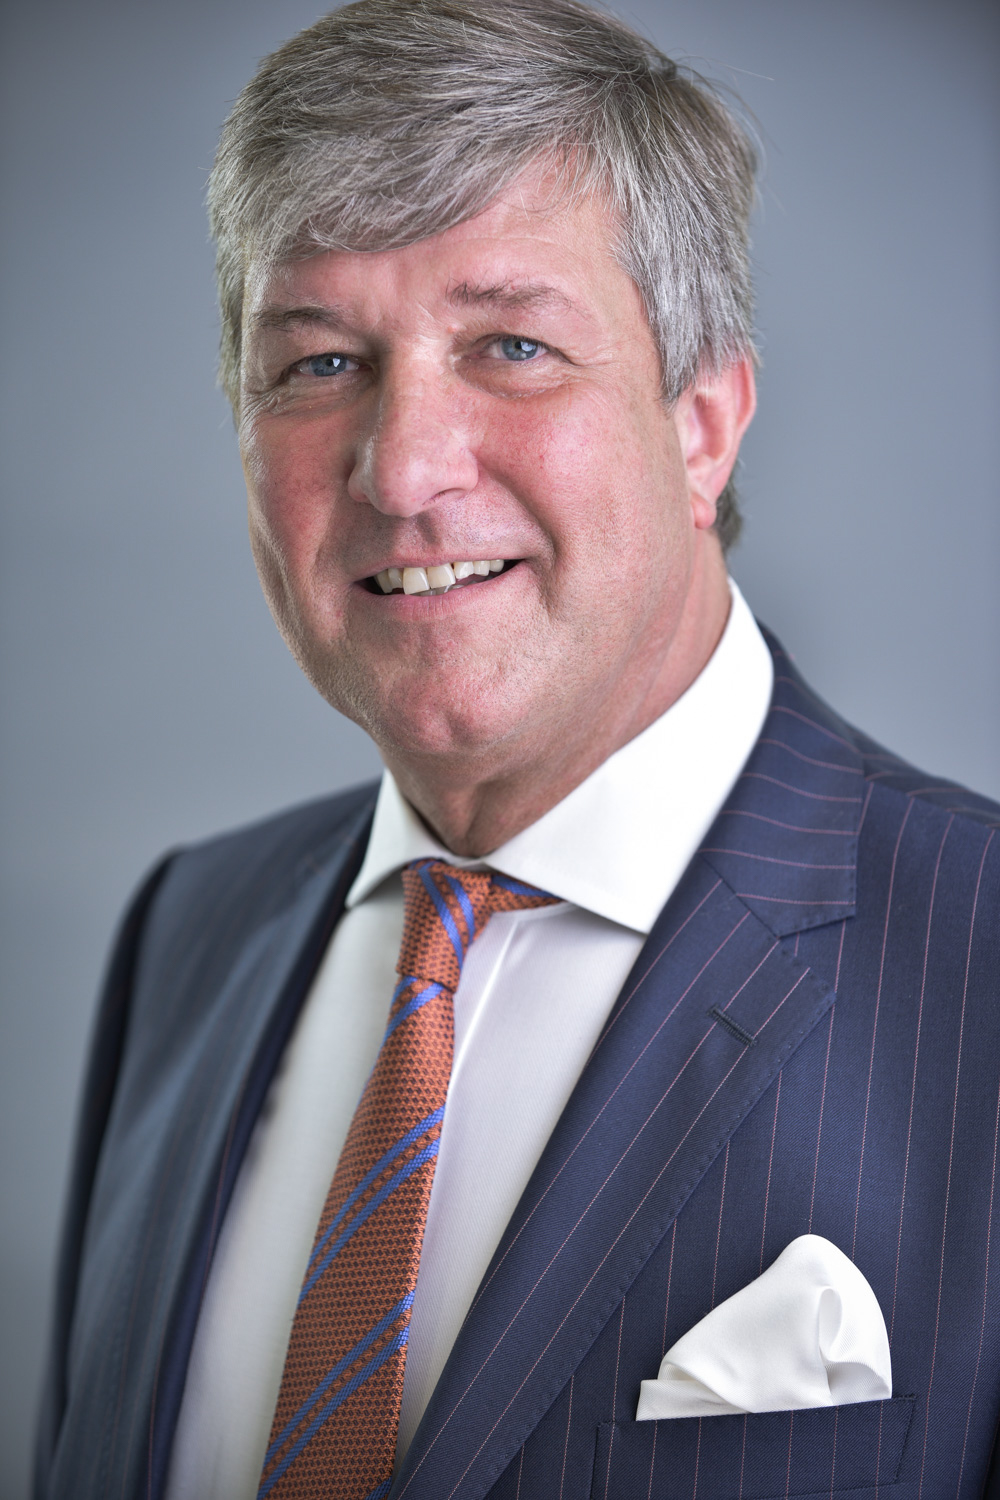 Tim Seeley. Barclays PLC. Head of Business and Corporate Banking